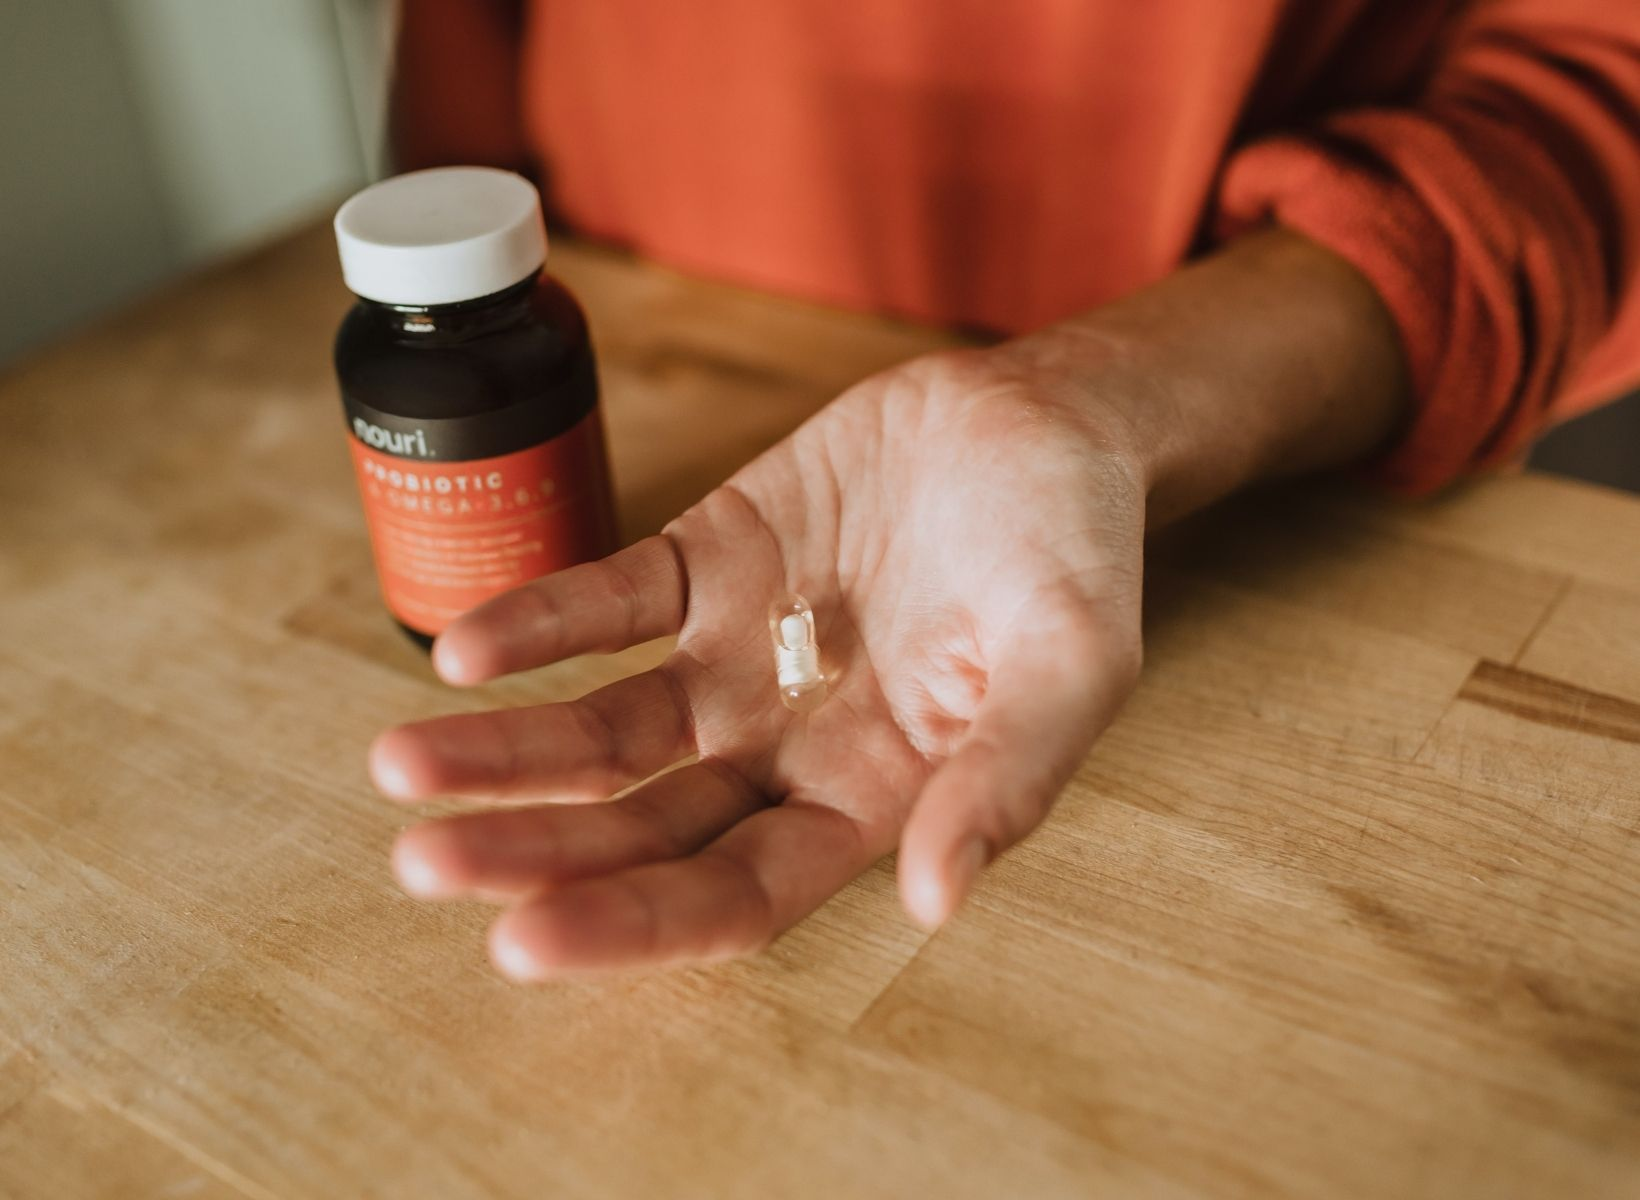 A close up shot of a hand holding a probiotic pill